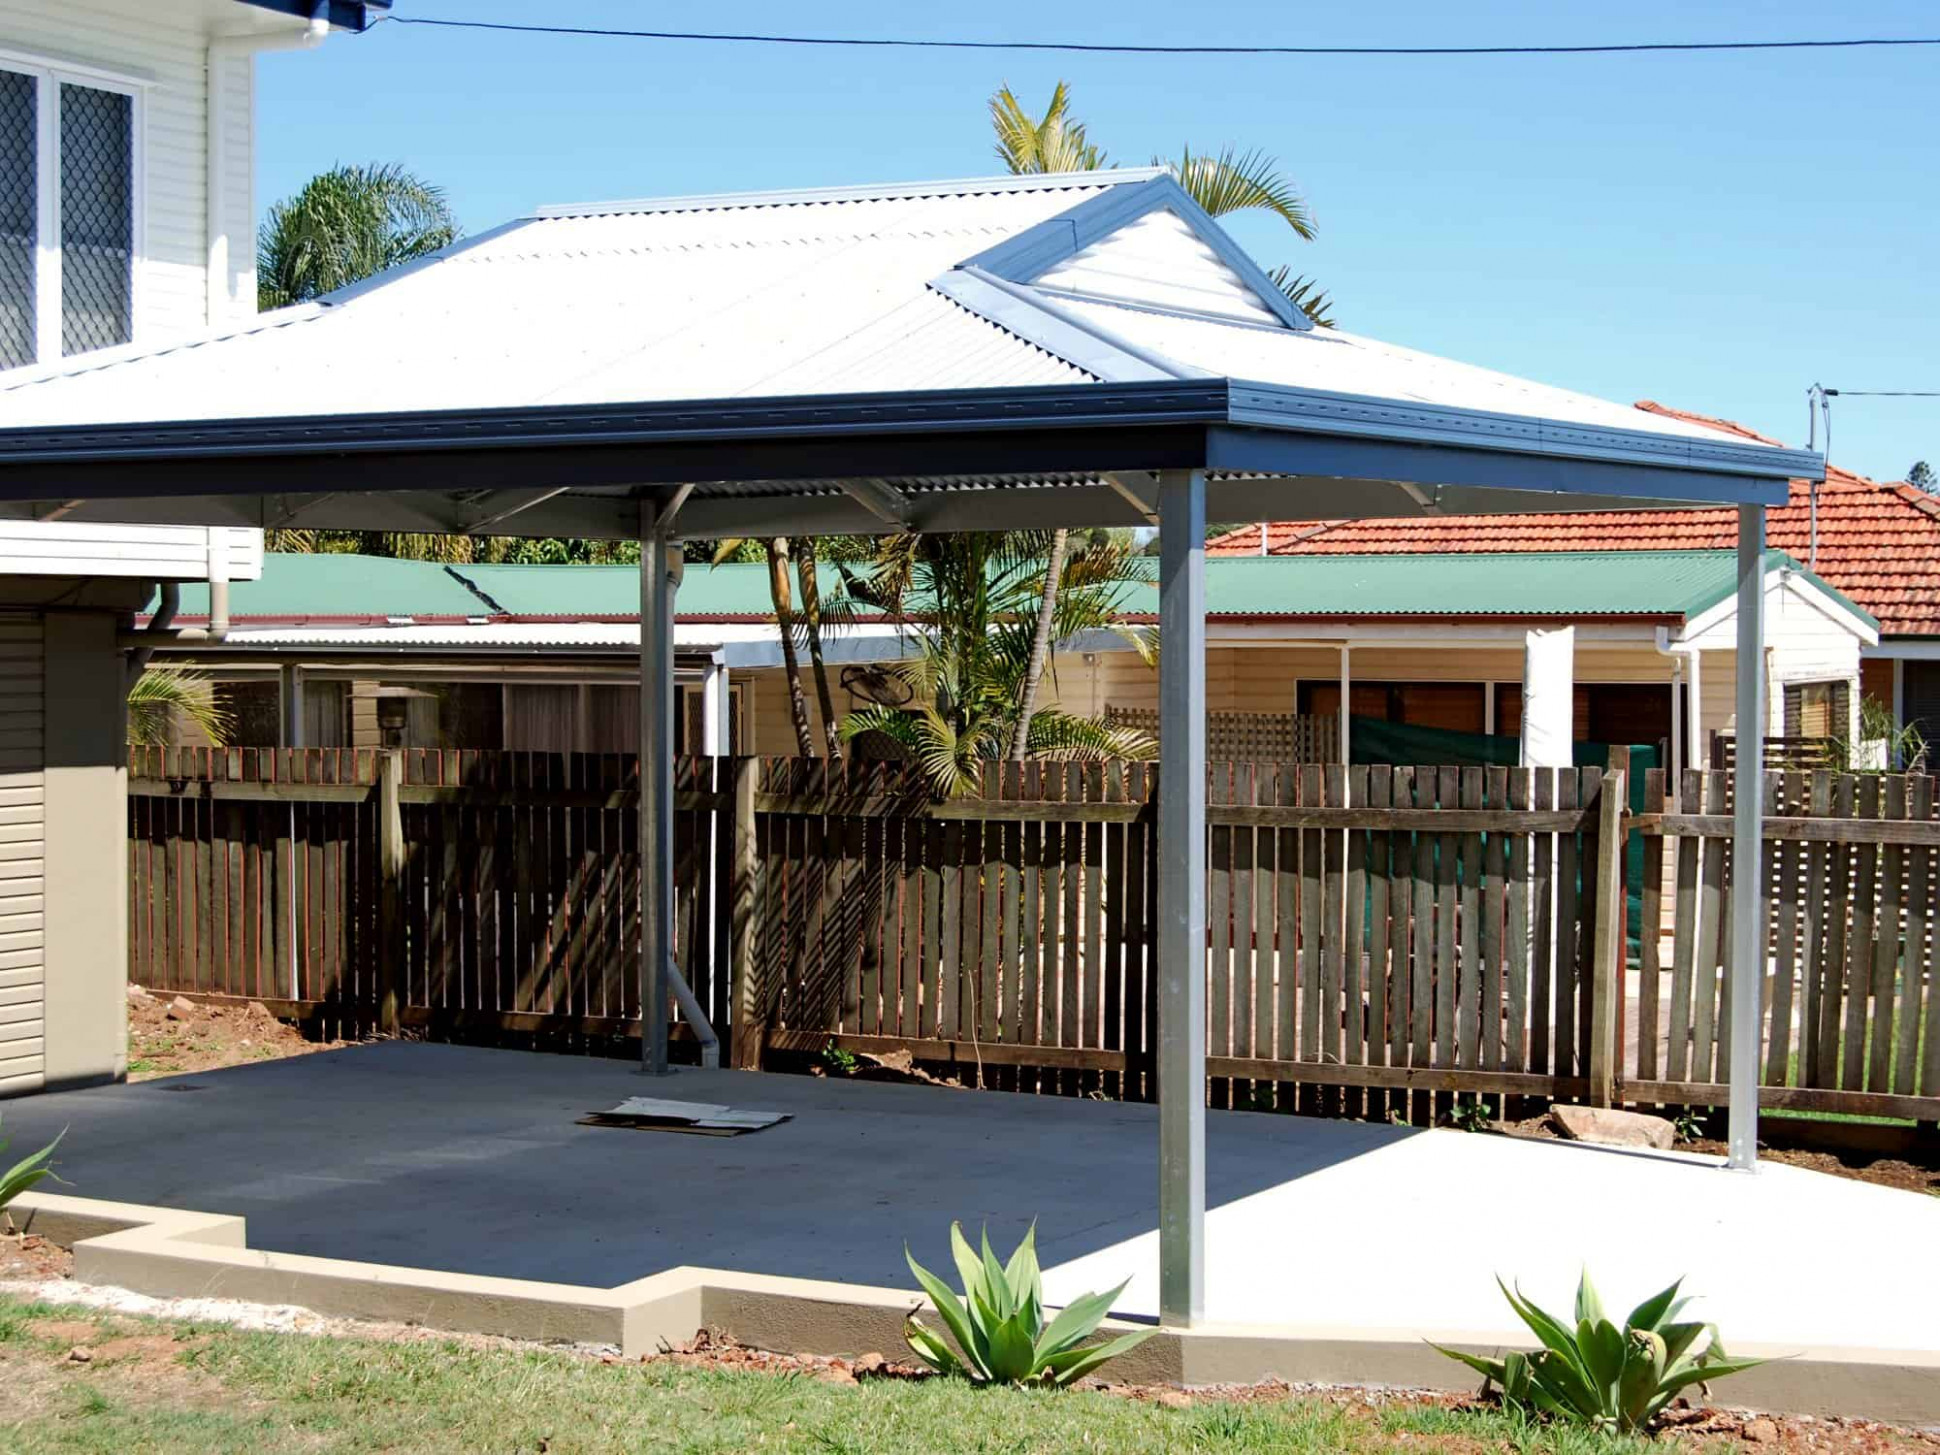 Carports | Any Size, Any Style | Carport Kits Or Installed Carport Hip Roof